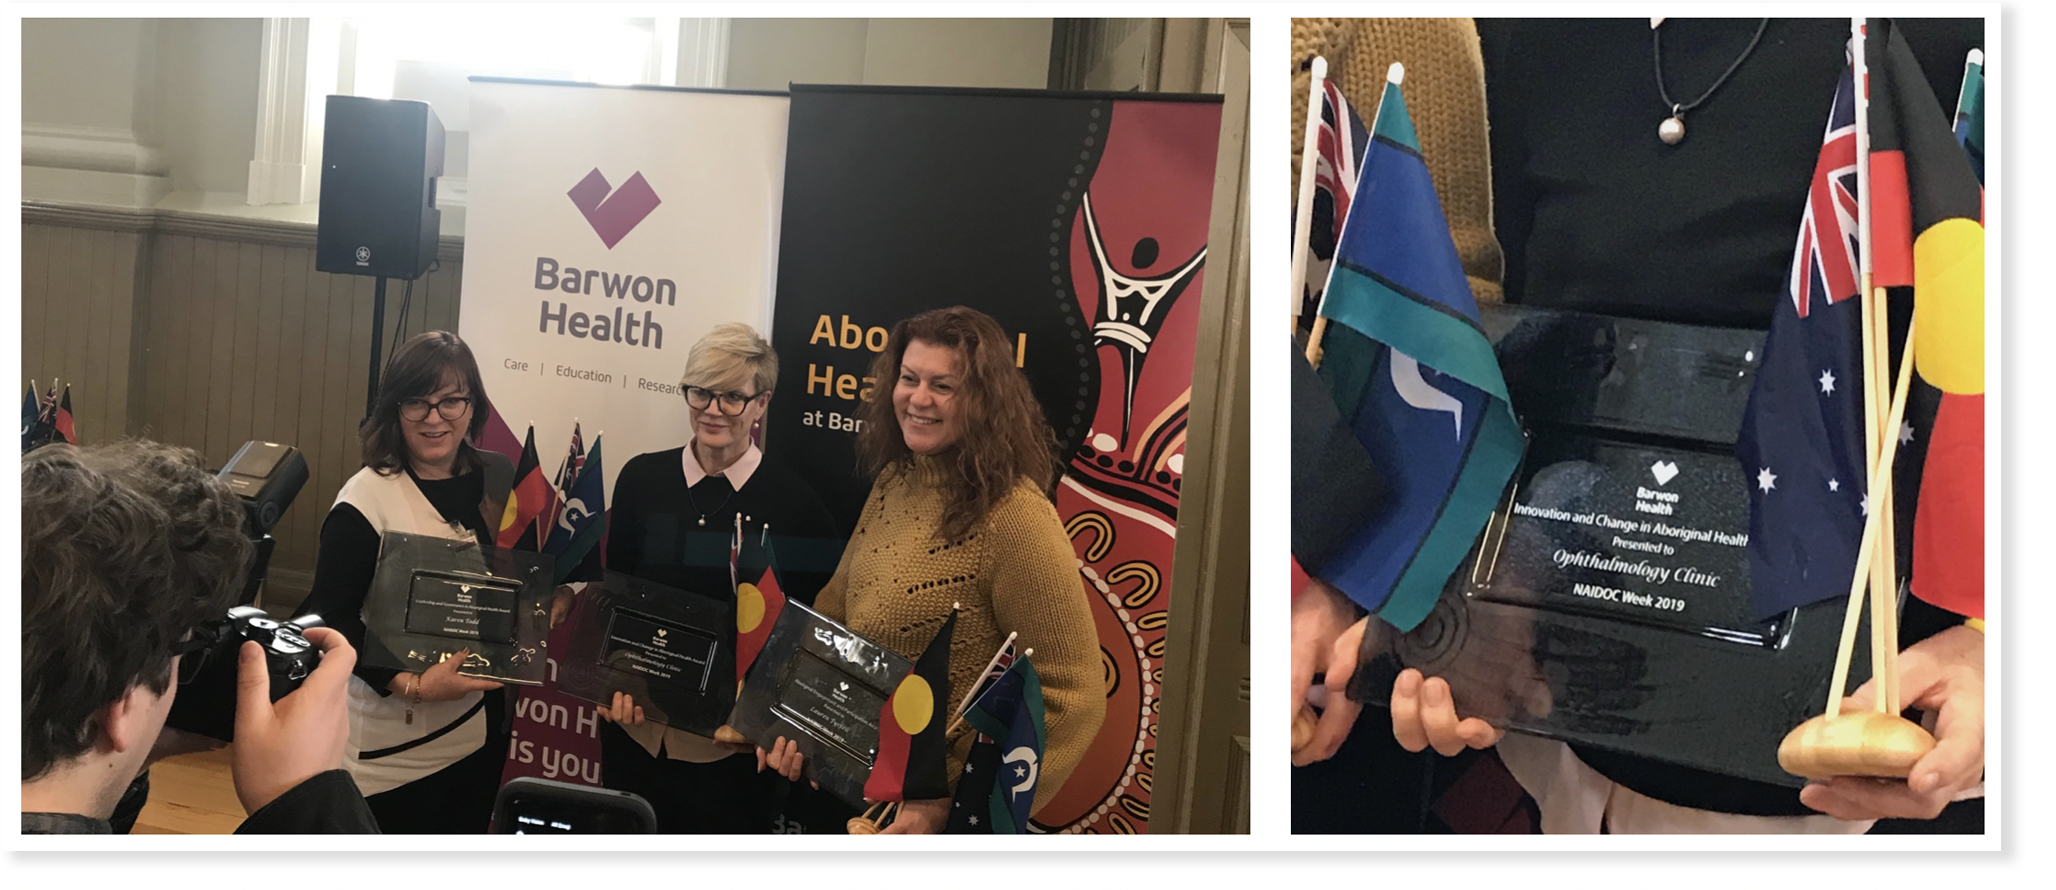 Barwon Health Ophthalmology recognised during NAIDOC Week 2019 as they receive an award for 'Innovation and Change in Aboriginal Health' for their work in improving Indigenous access to cataract surgery in the Geelong region.